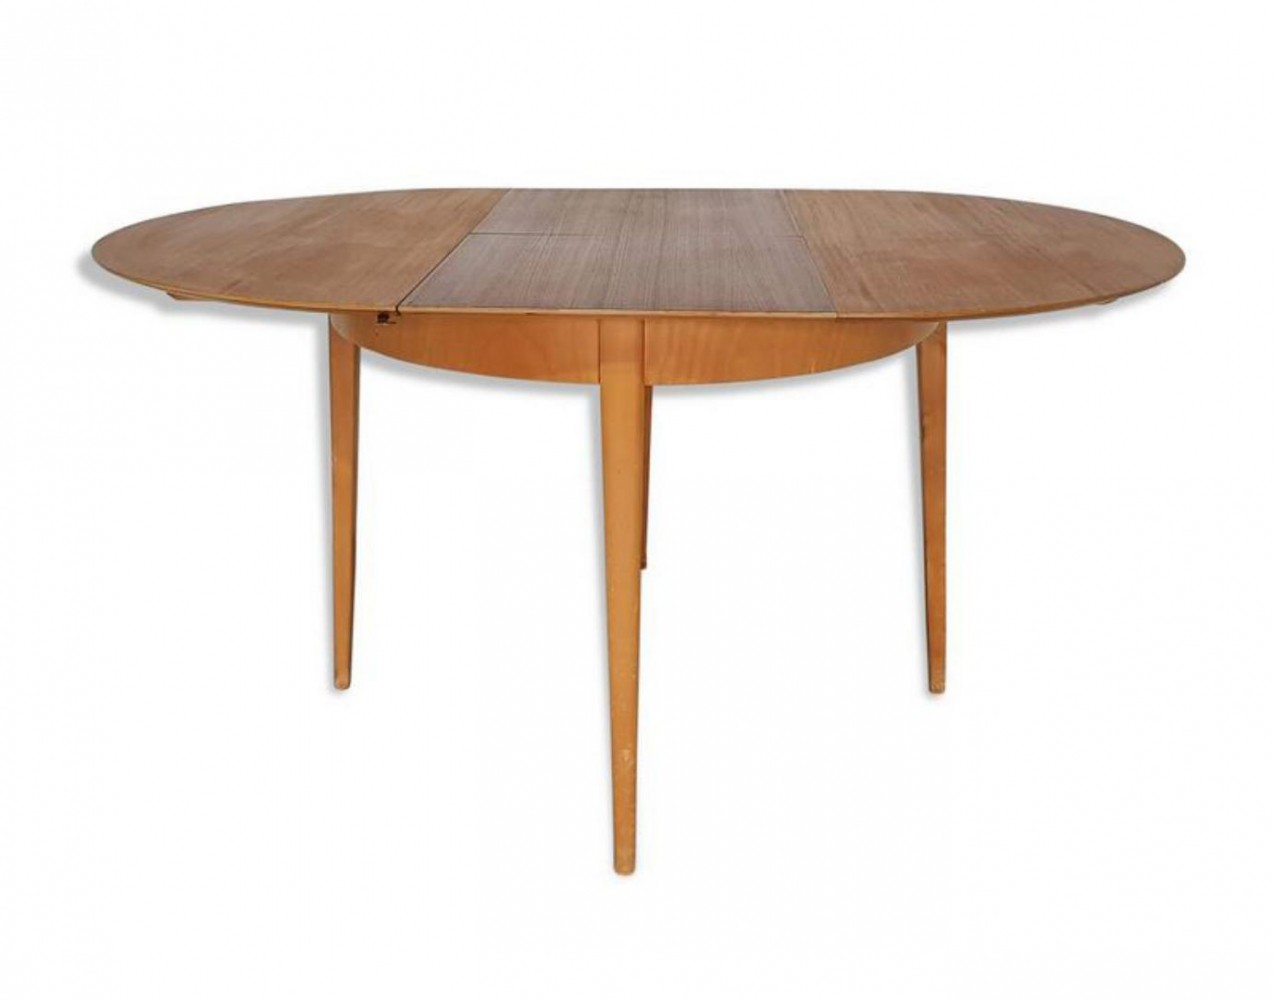 TB35 dining table by Cees Braakman for Pastoe, 1950s